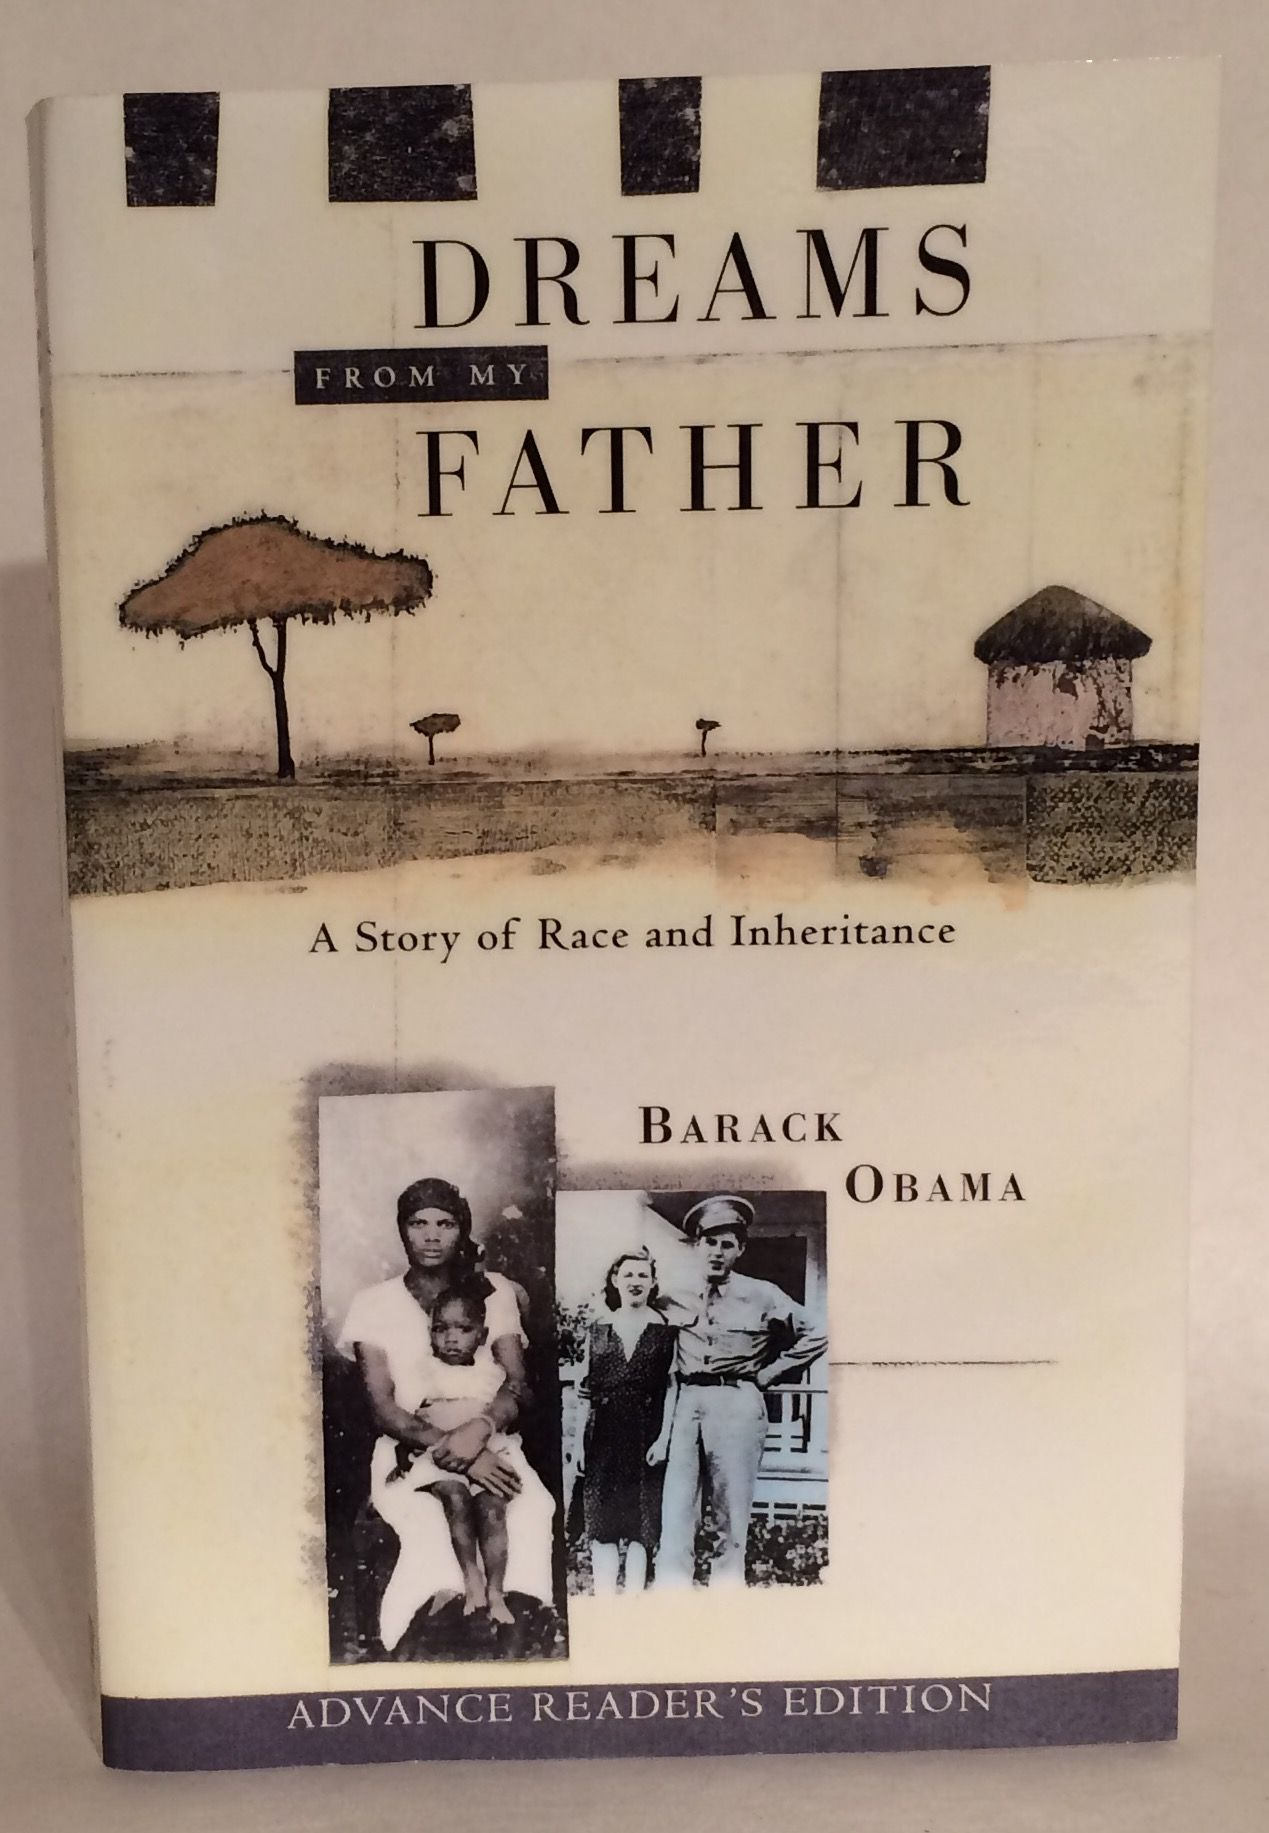 dreams of my father by barack obama essay Barack obama's memoir dreams from my father: a story of race and inheritance was published in 1995, years before he was elected into the senate (and later, into the.